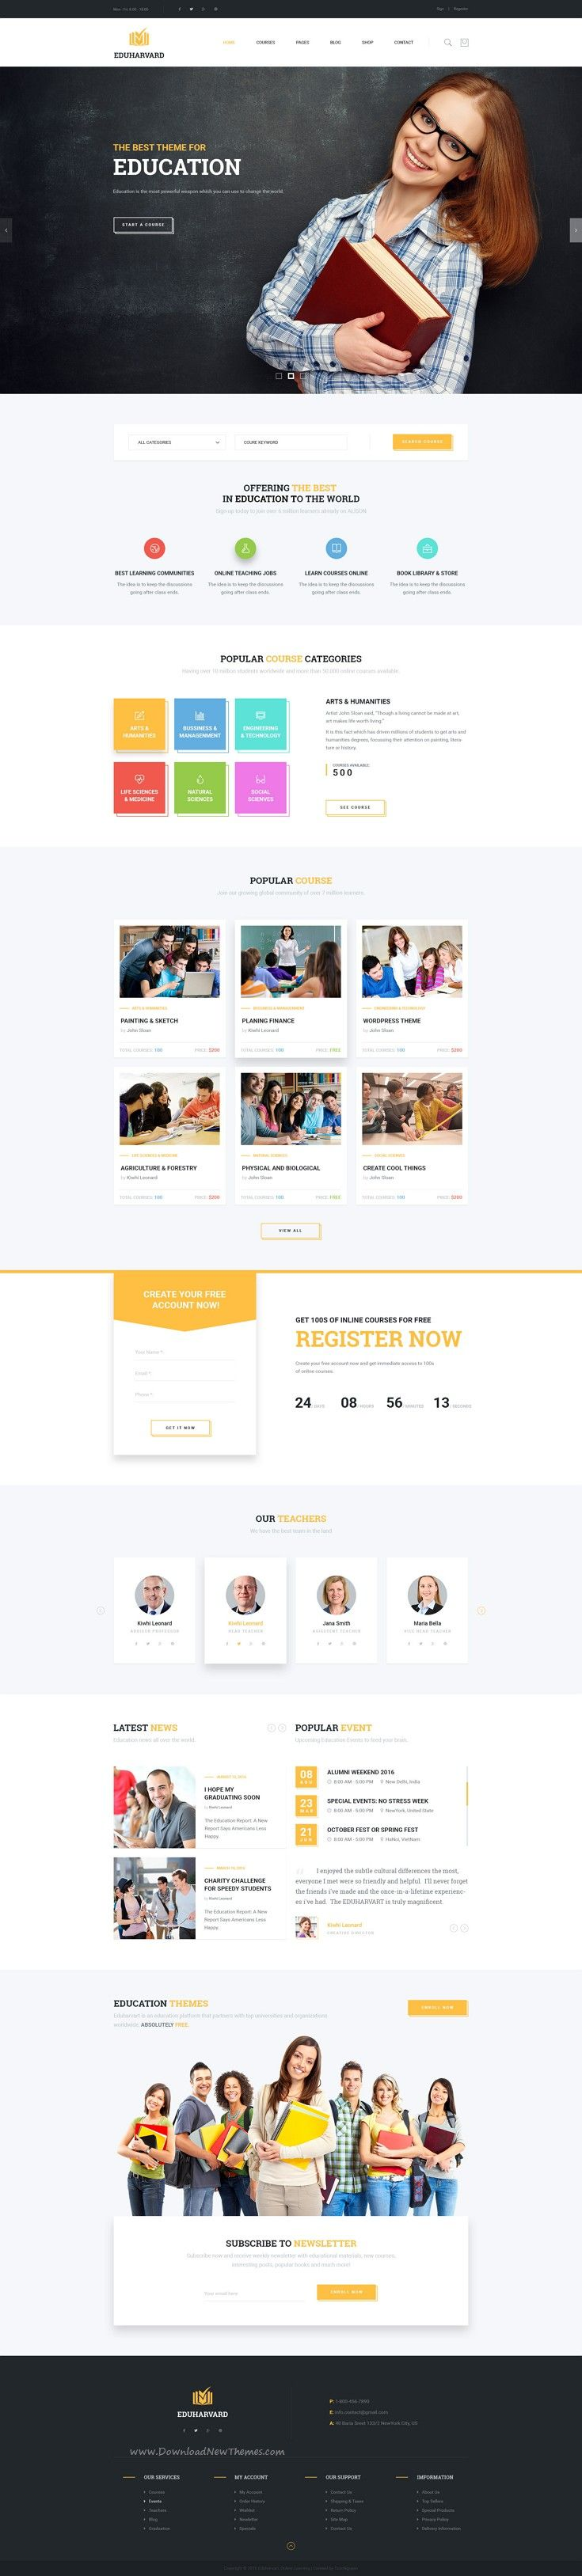 Eduharvard is a Modern, Creative, Responsive & Multipurpose #PSDTemplate Design suitable for #Educational Institutions like Universities and Colleges, Online #Courses / Online Learning and Events.